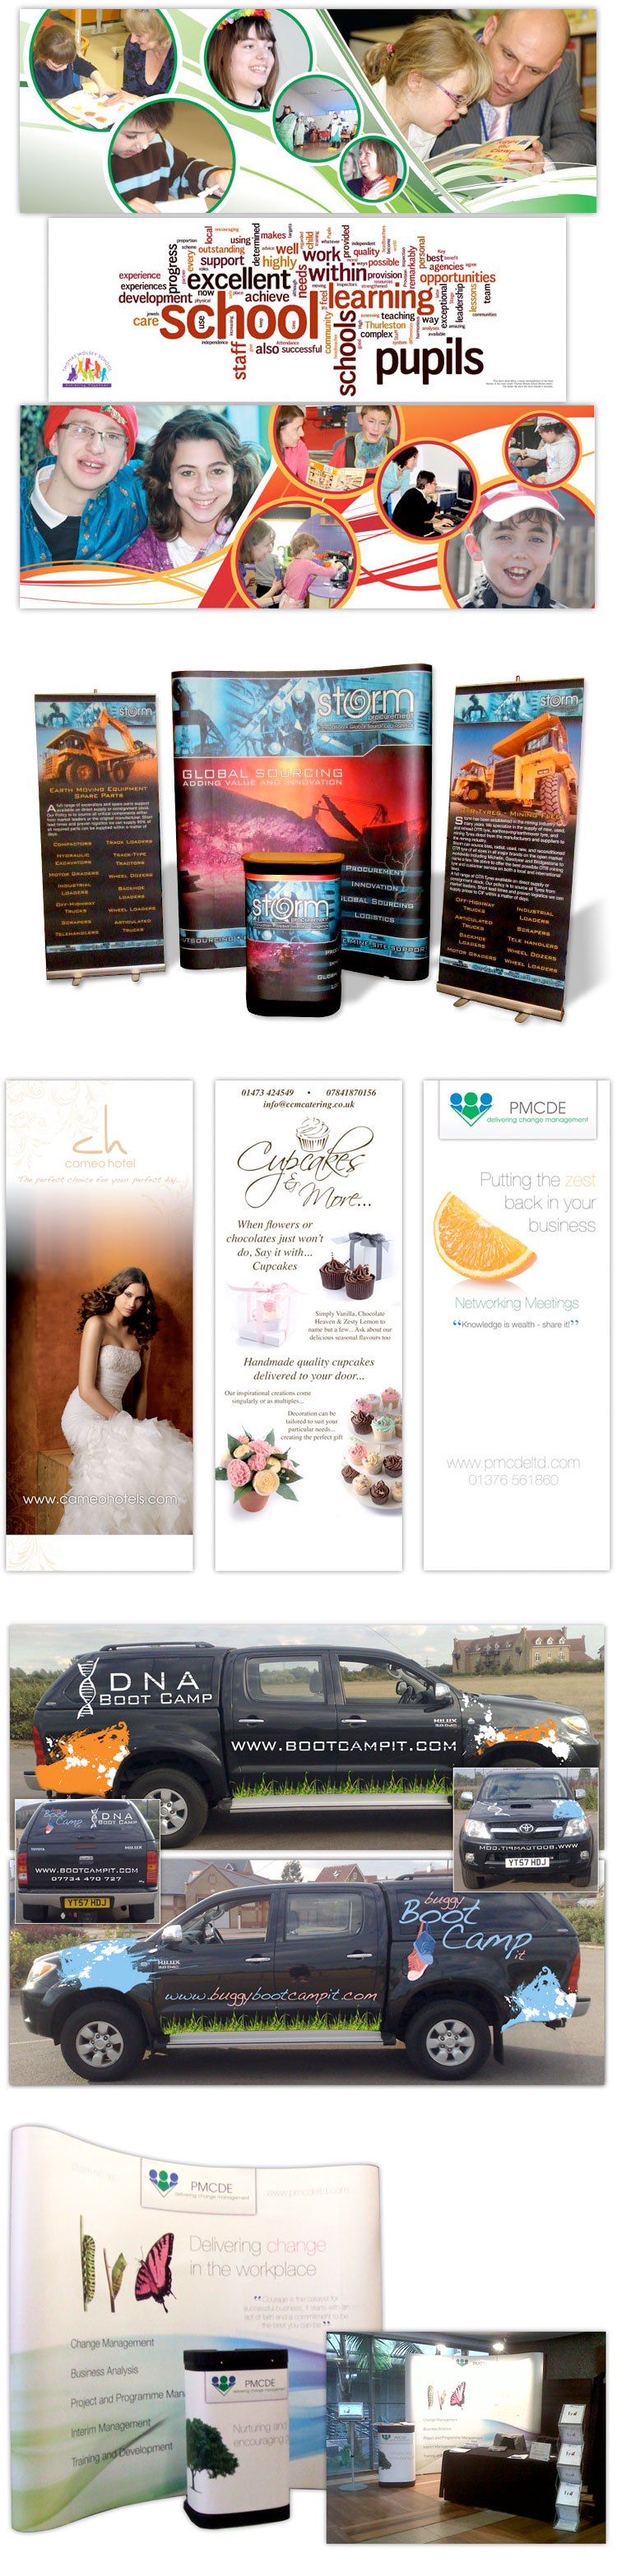 promotional-display-boards